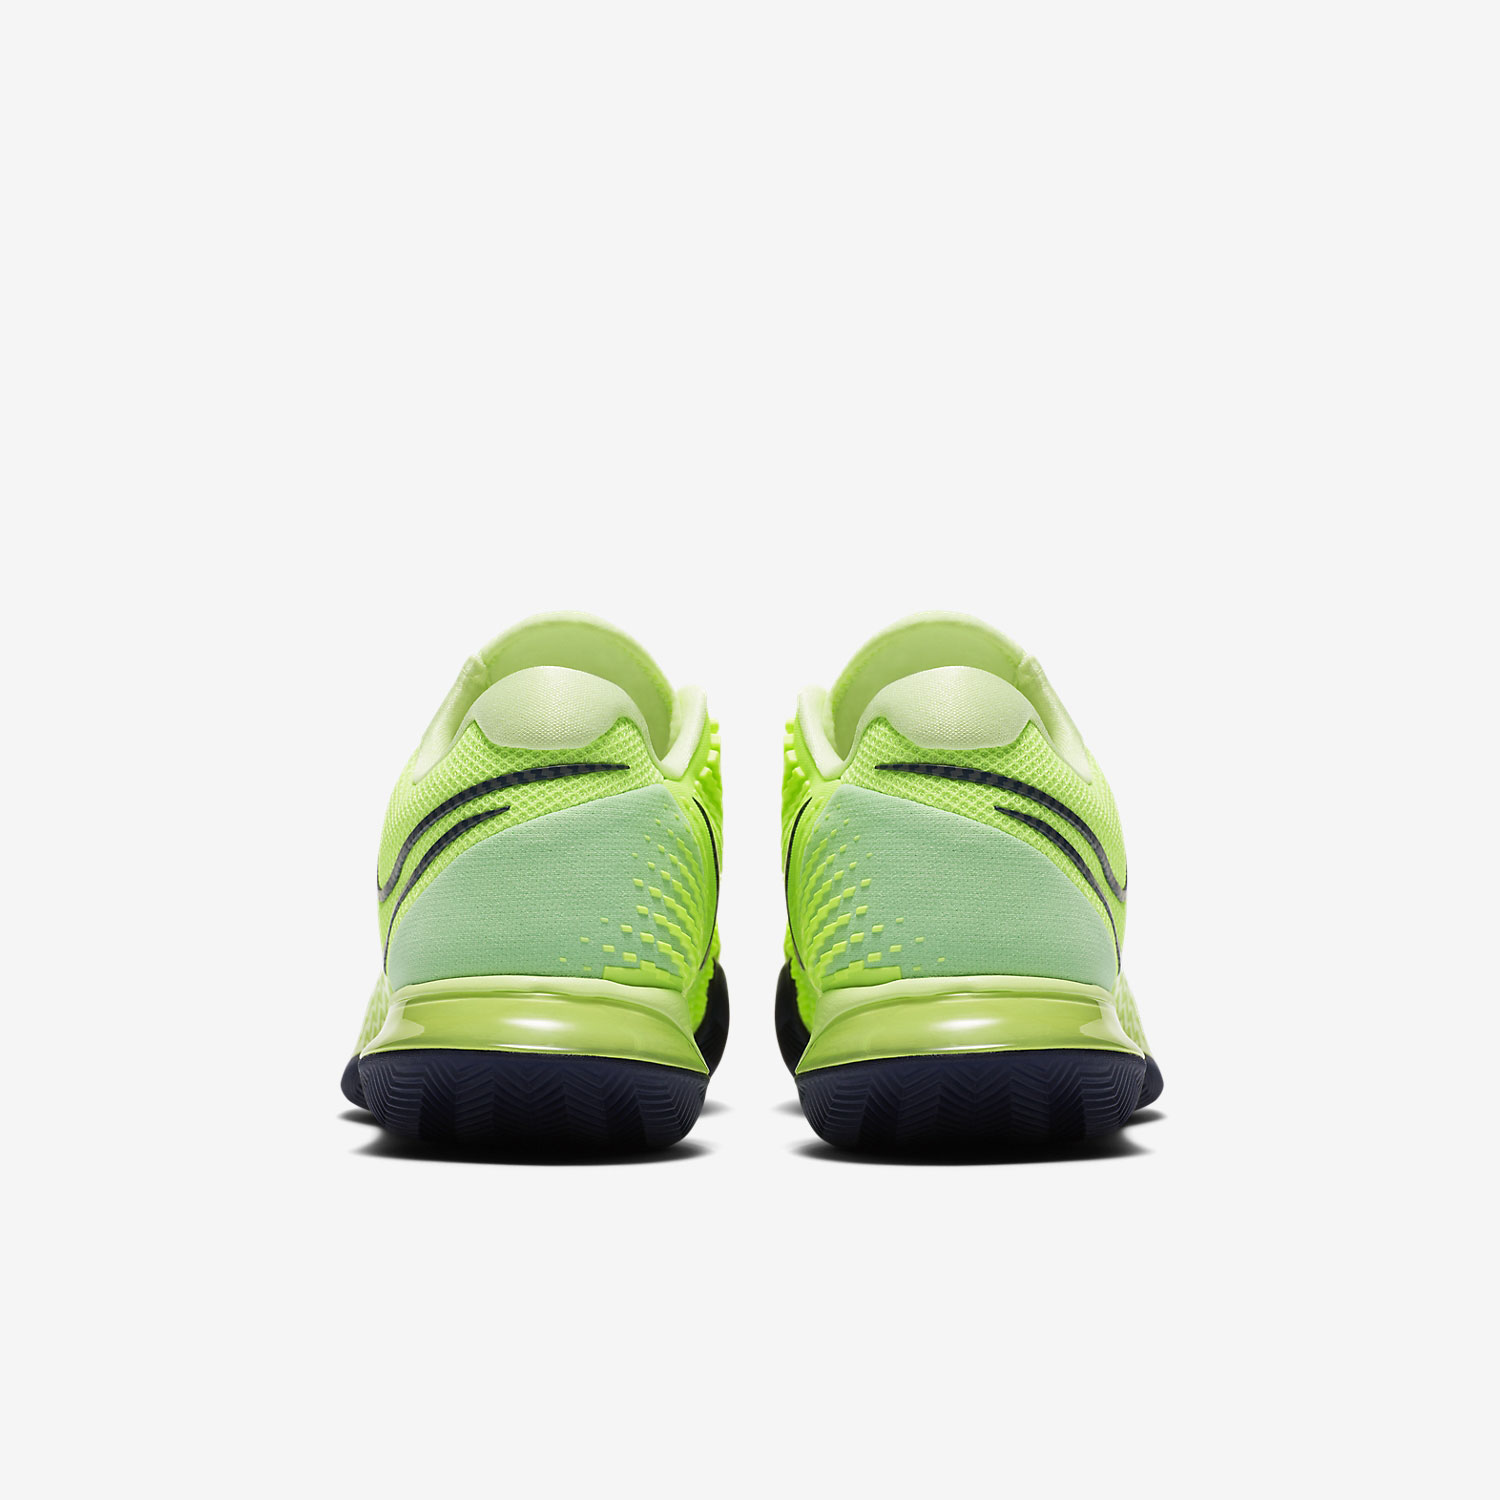 Nike Air Zoom Vapor Cage 4 Clay - Ghost Green/Blackened Blue/Barely Volt